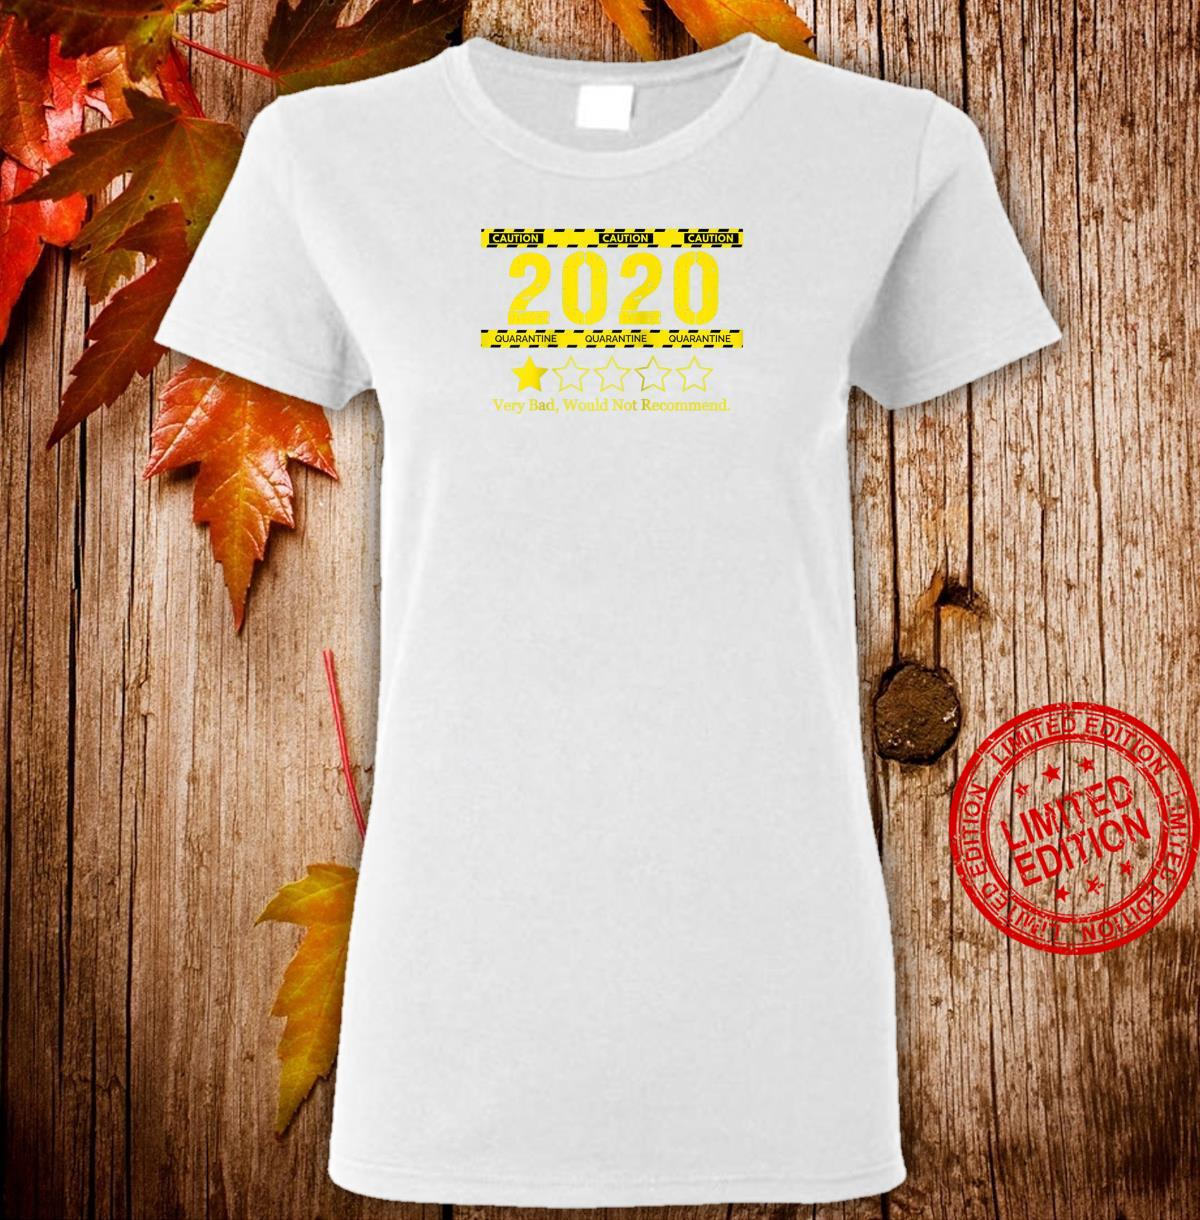 1 Star Rating 2020 Review Very Bad Would Not Recommend Shirt ladies tee